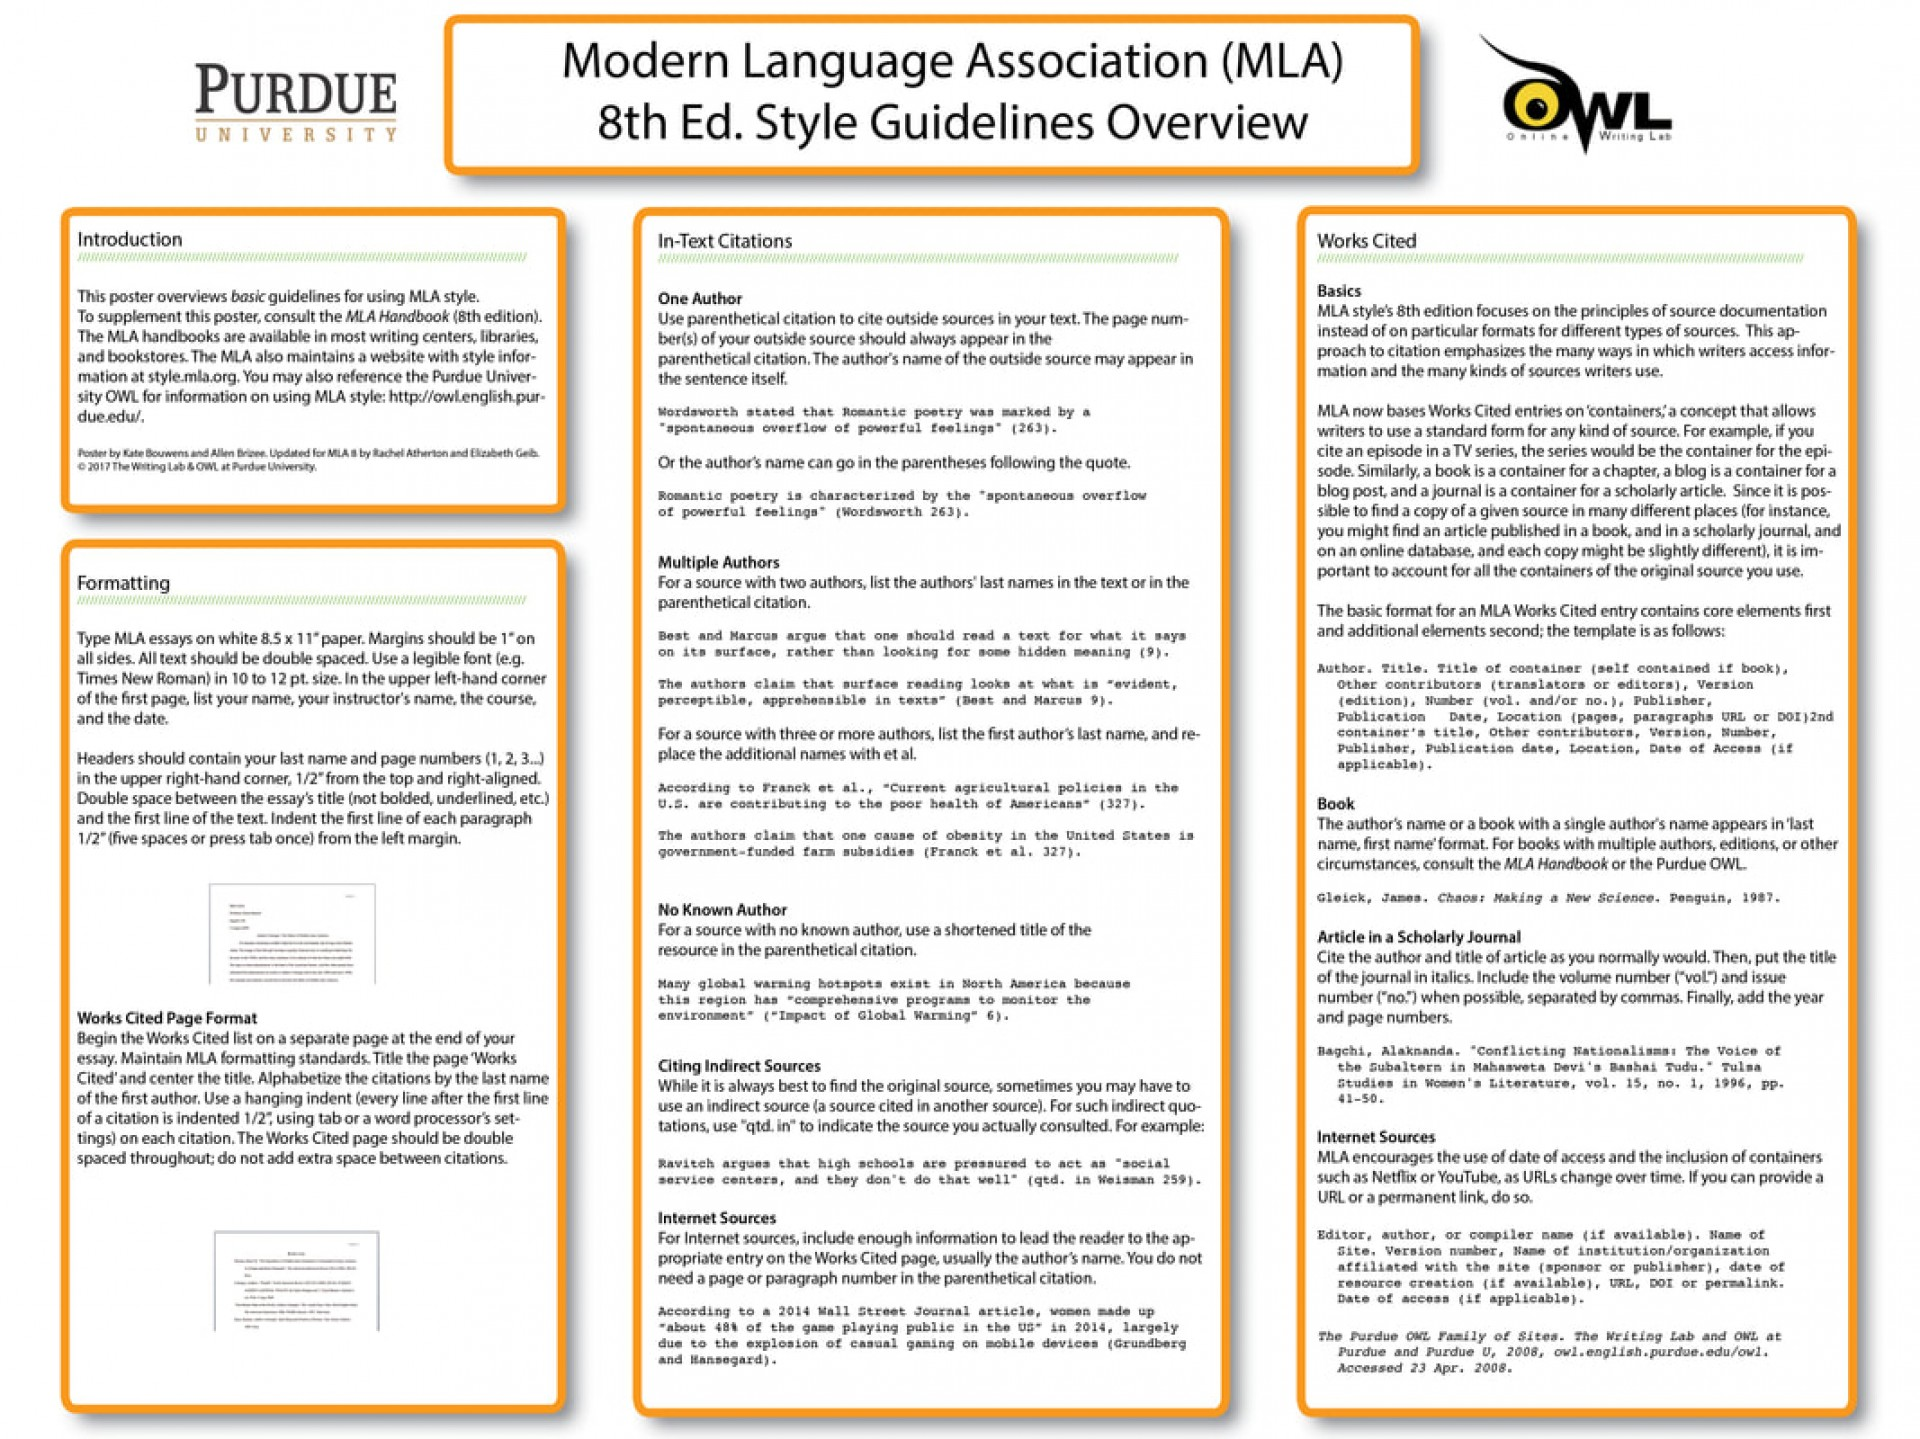 016 Mla Poster Orig Research Paper Best Website To Read Outstanding Papers 1920